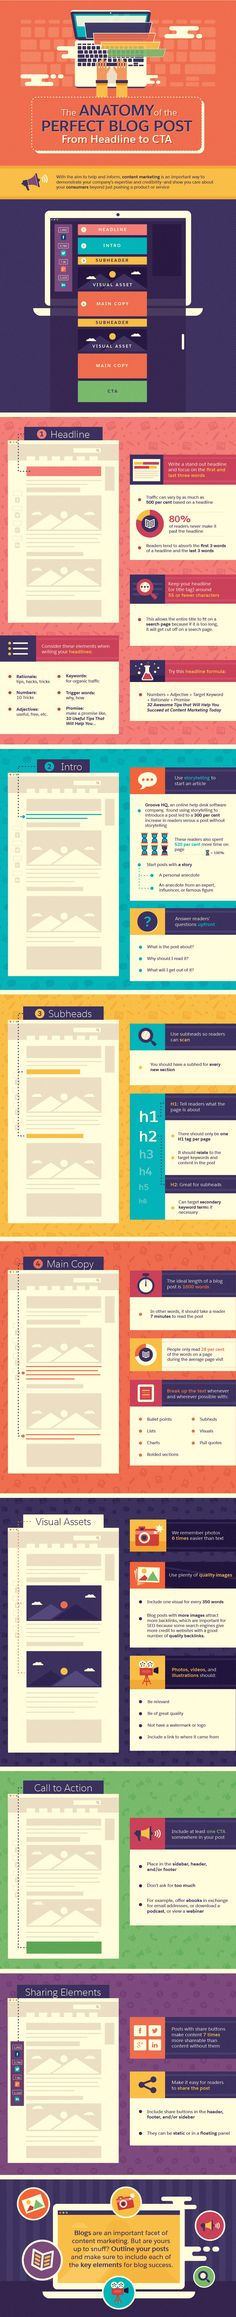 What Makes The Perfect Blog Post: From Headline to Call-To-Action - Social Media Week